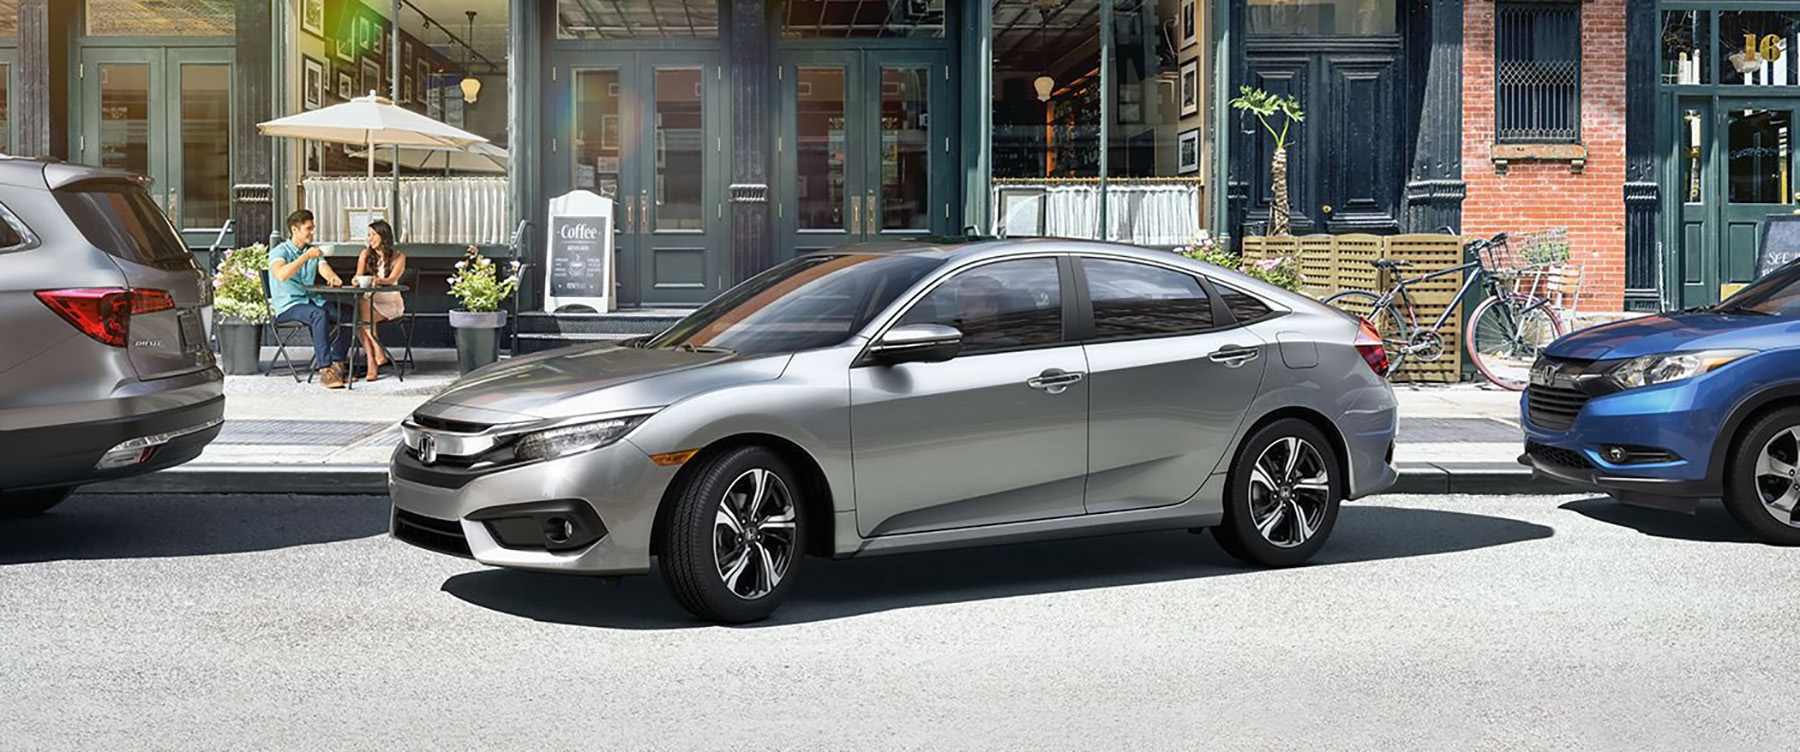 Certified Pre Owned Honda >> Explore the Impressive 2017 Honda Civic Sedan Safety Features